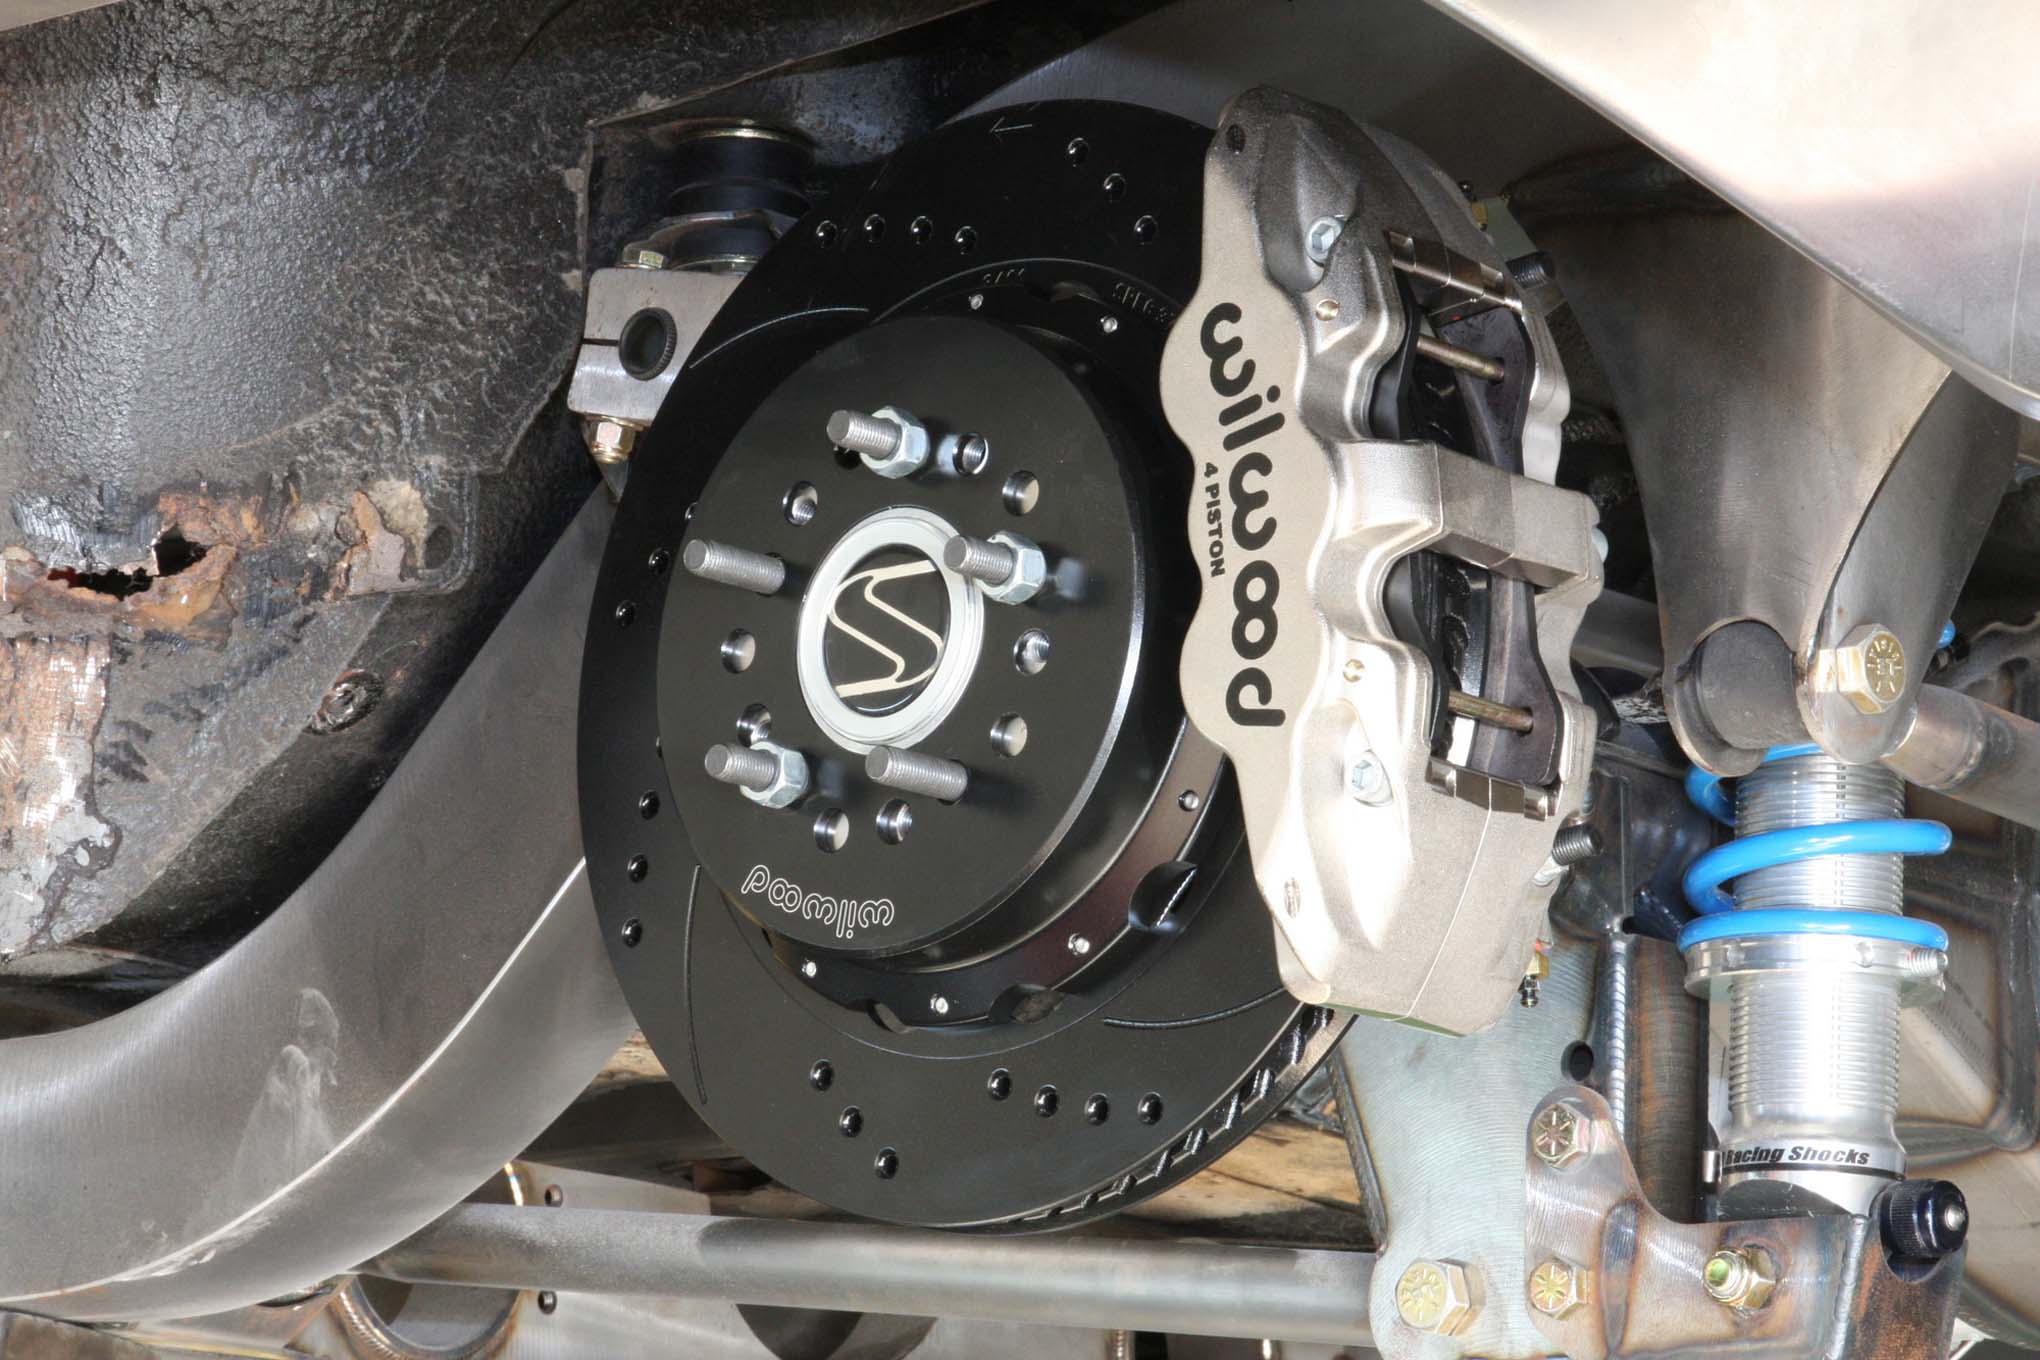 In the rear four-piston calipers with 12.88-inch discs are used.